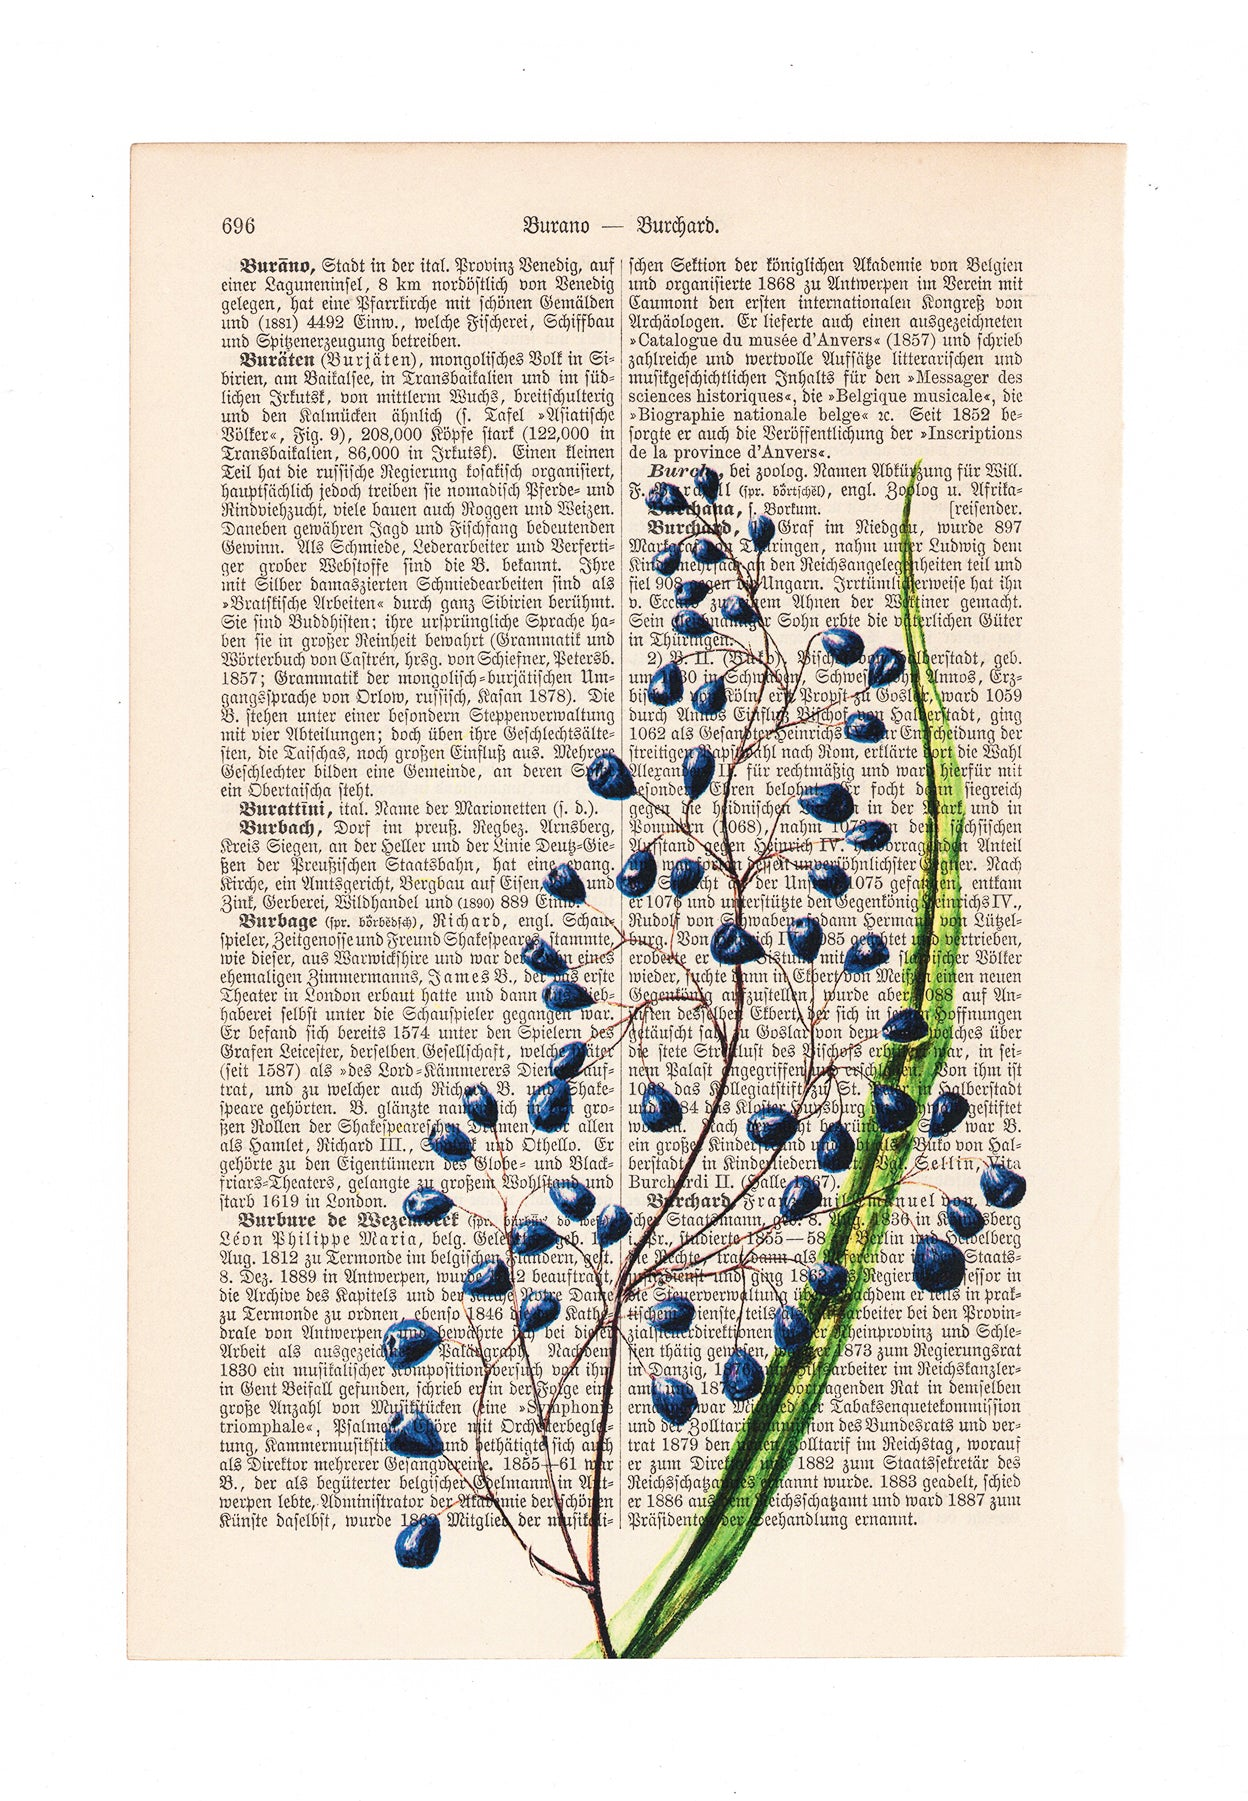 Dianella intermedia - Flower - Art on Words